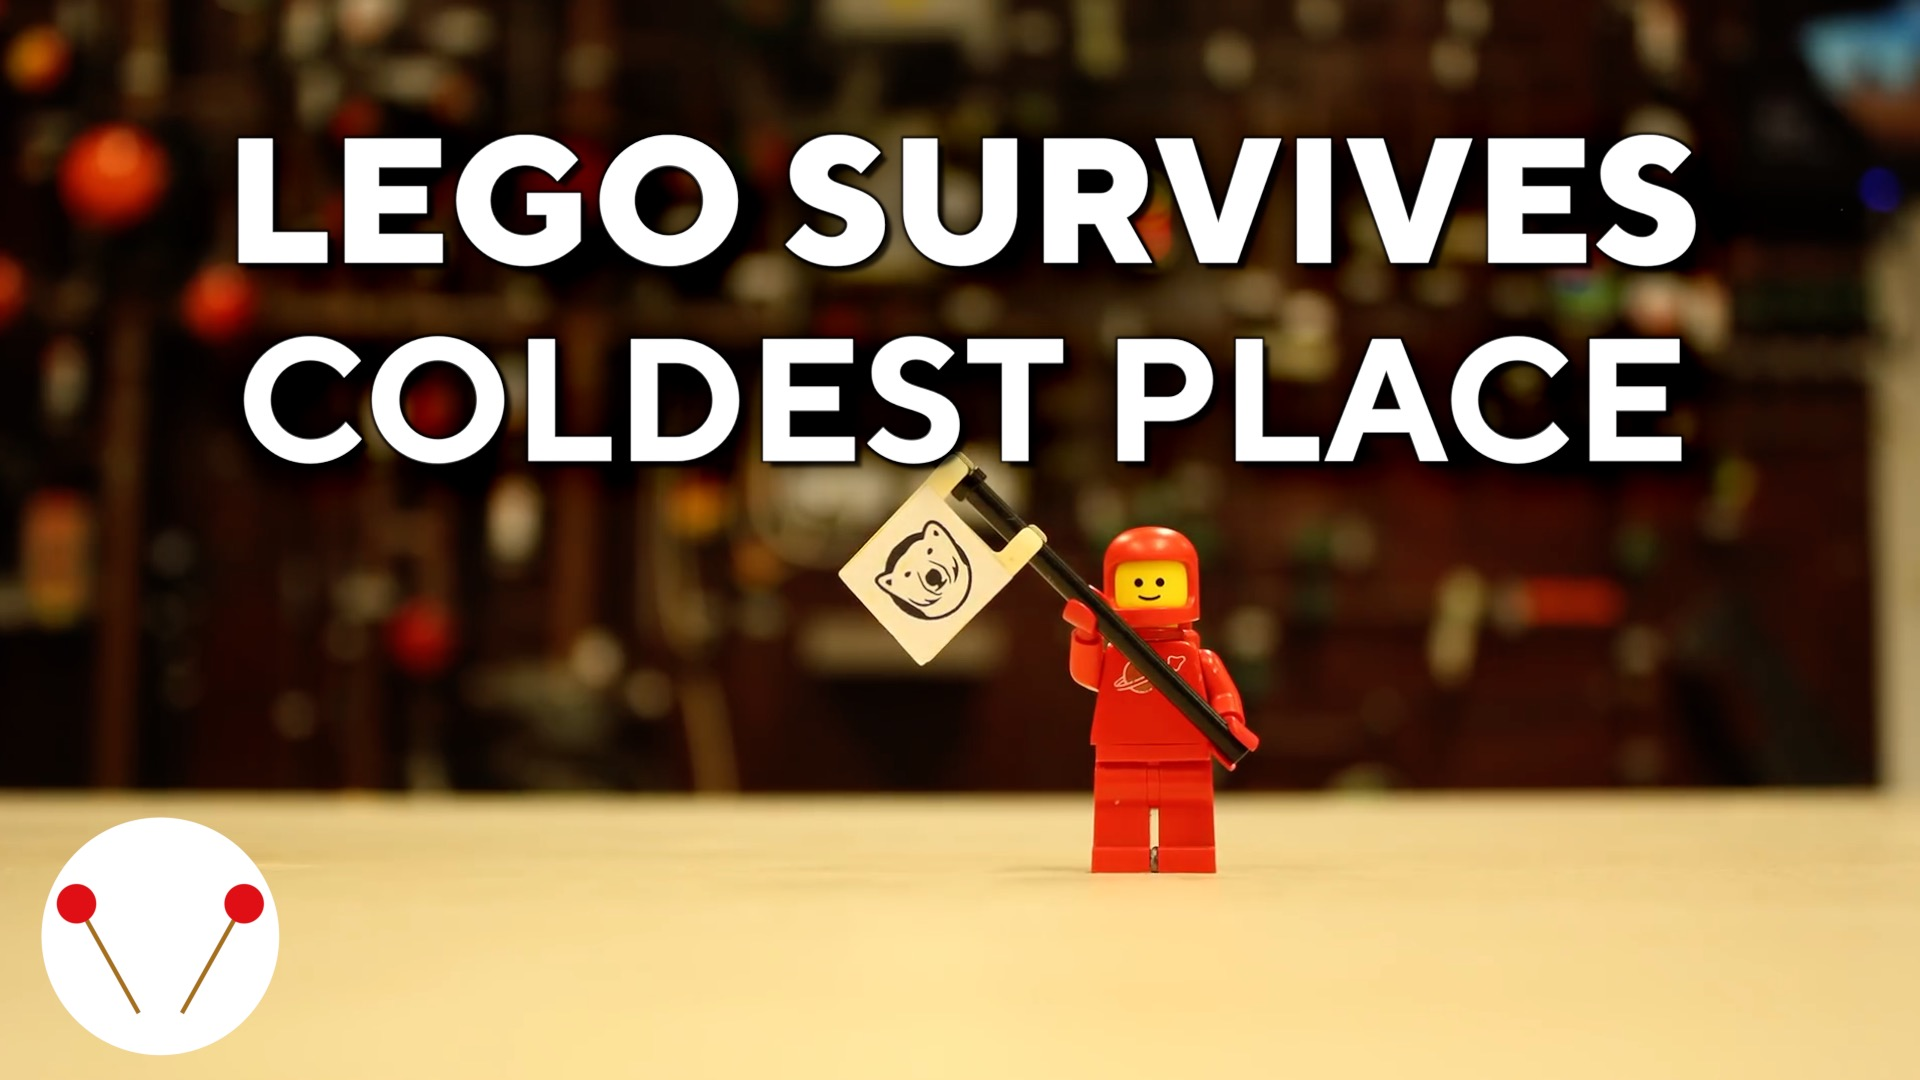 This Lego survived the coldest place in universe